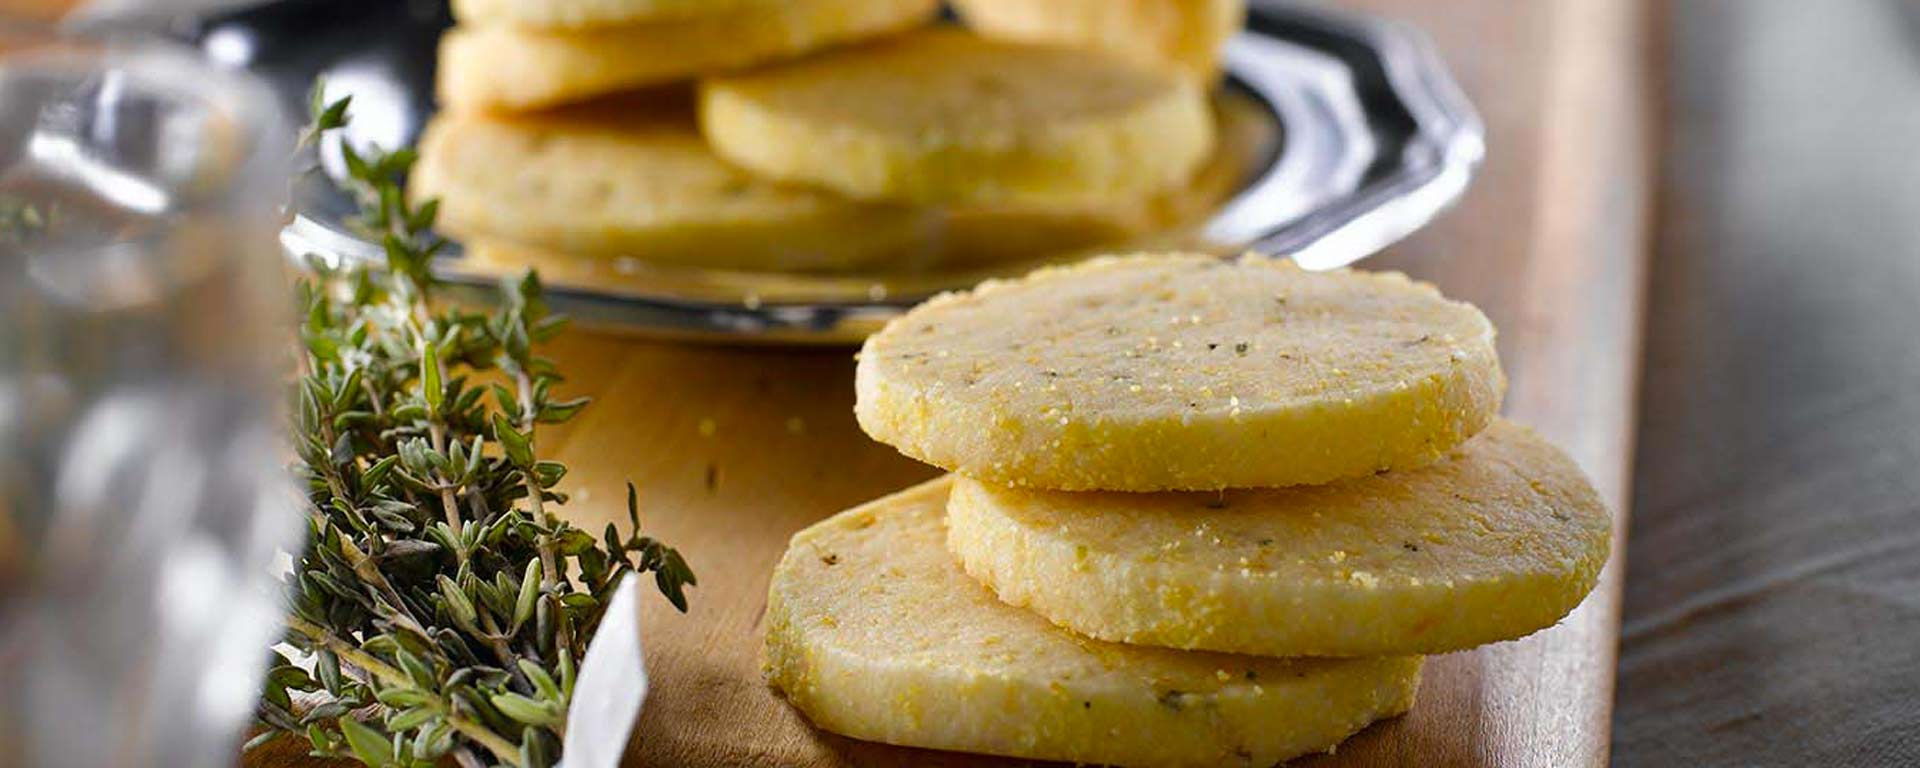 Photo of - Orange and Thyme Cornmeal Shortbread